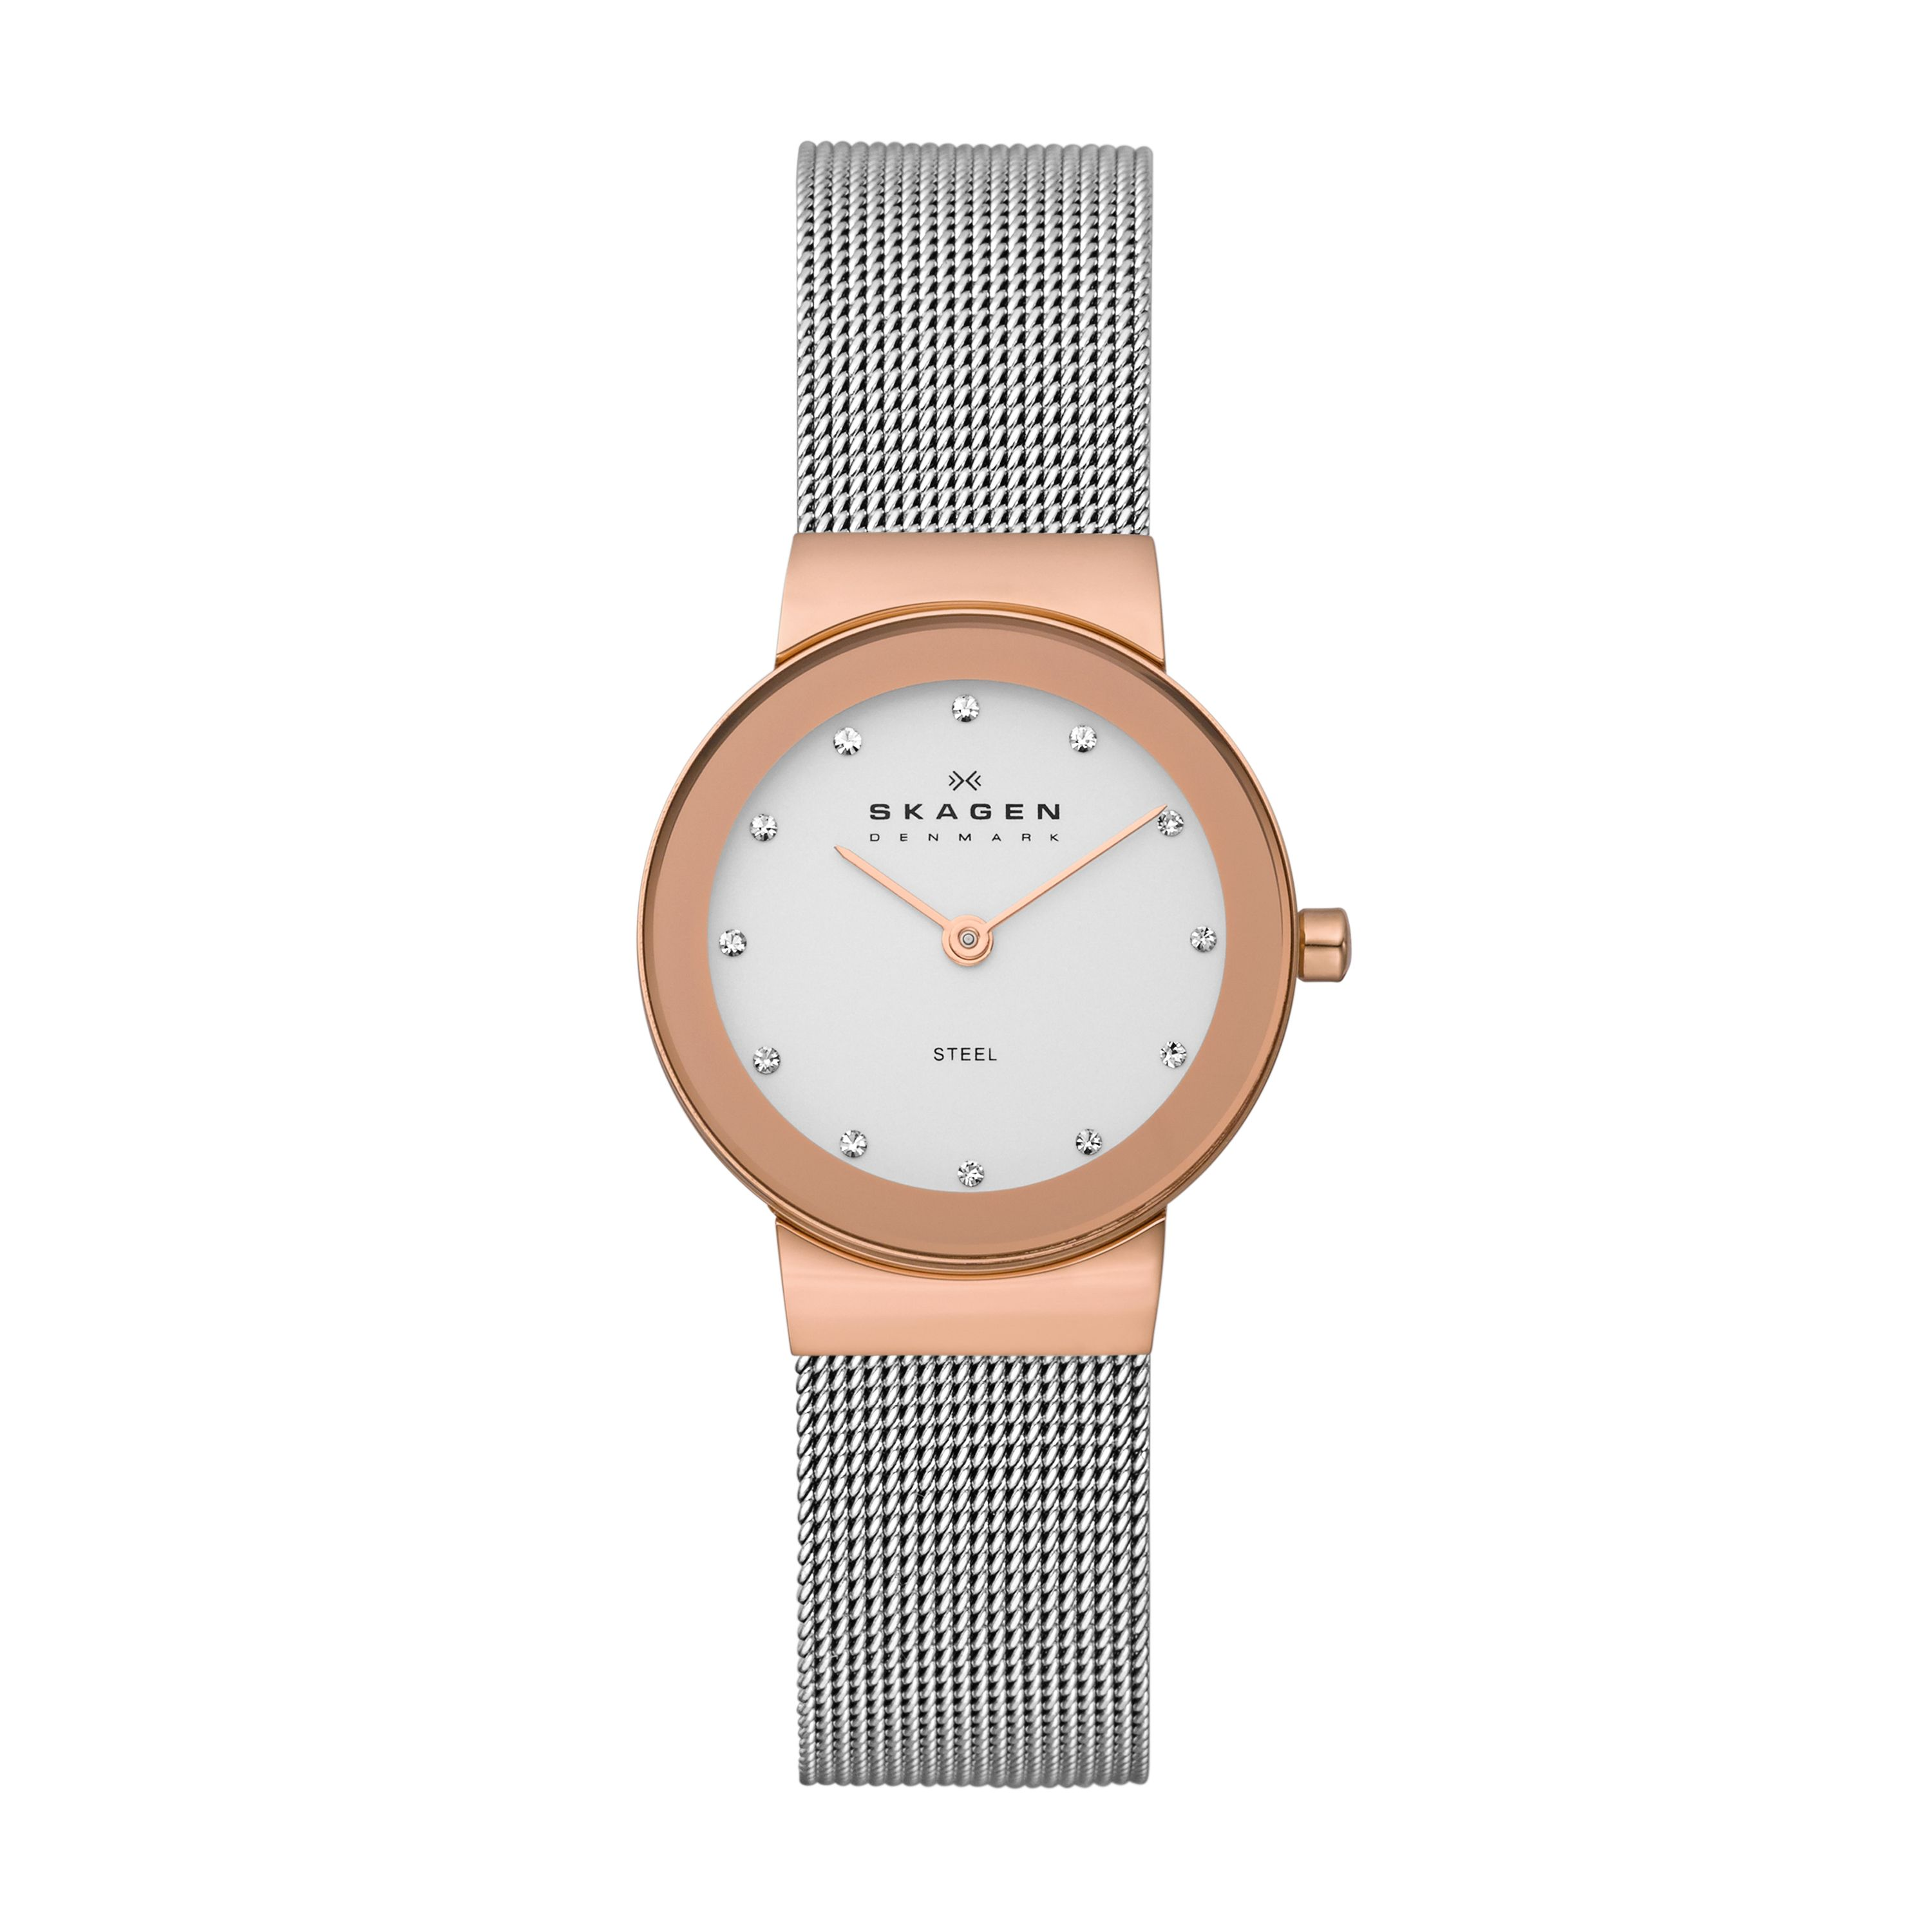 358SRSC Rose Gold case steel mesh classic watch